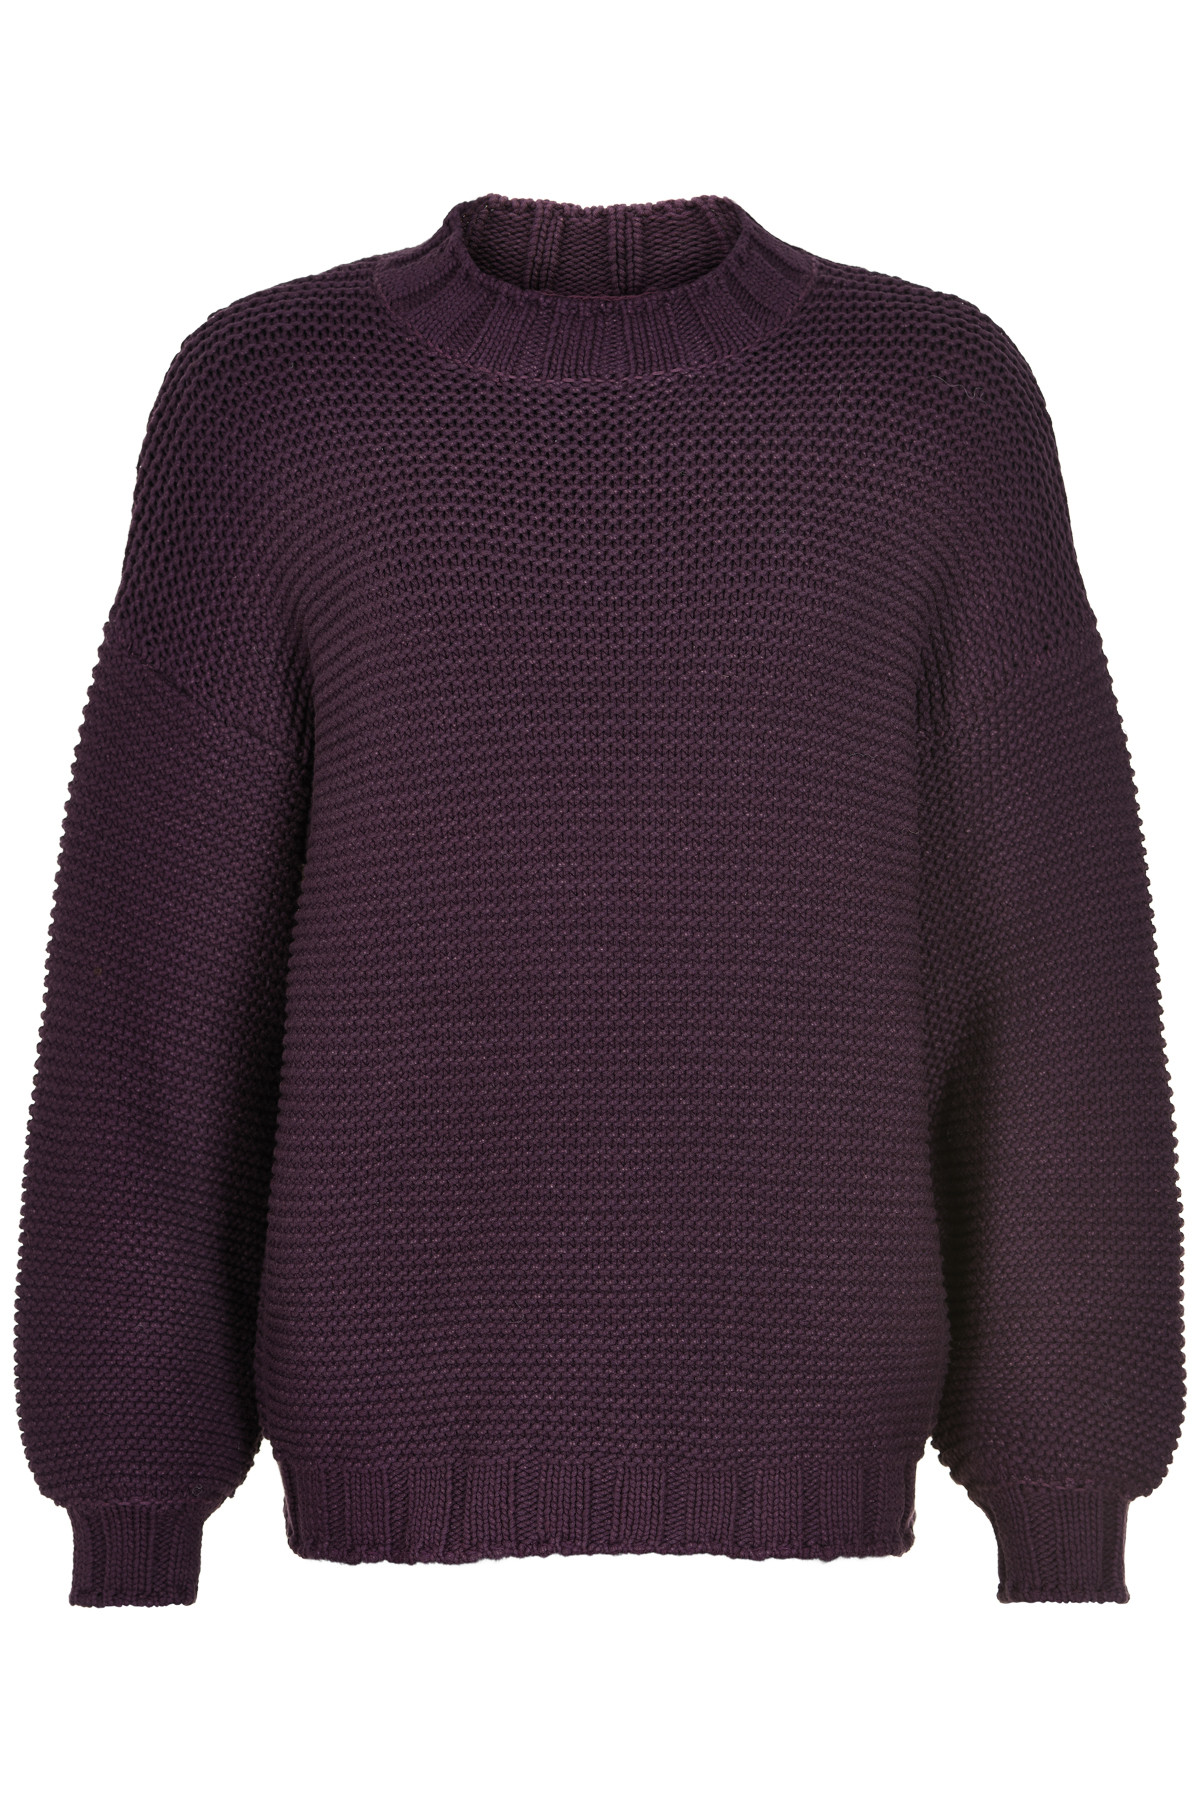 Image of   AND LESS NEW RAIMONDO PULLOVER 5419208 P (Plum Perfect, L)